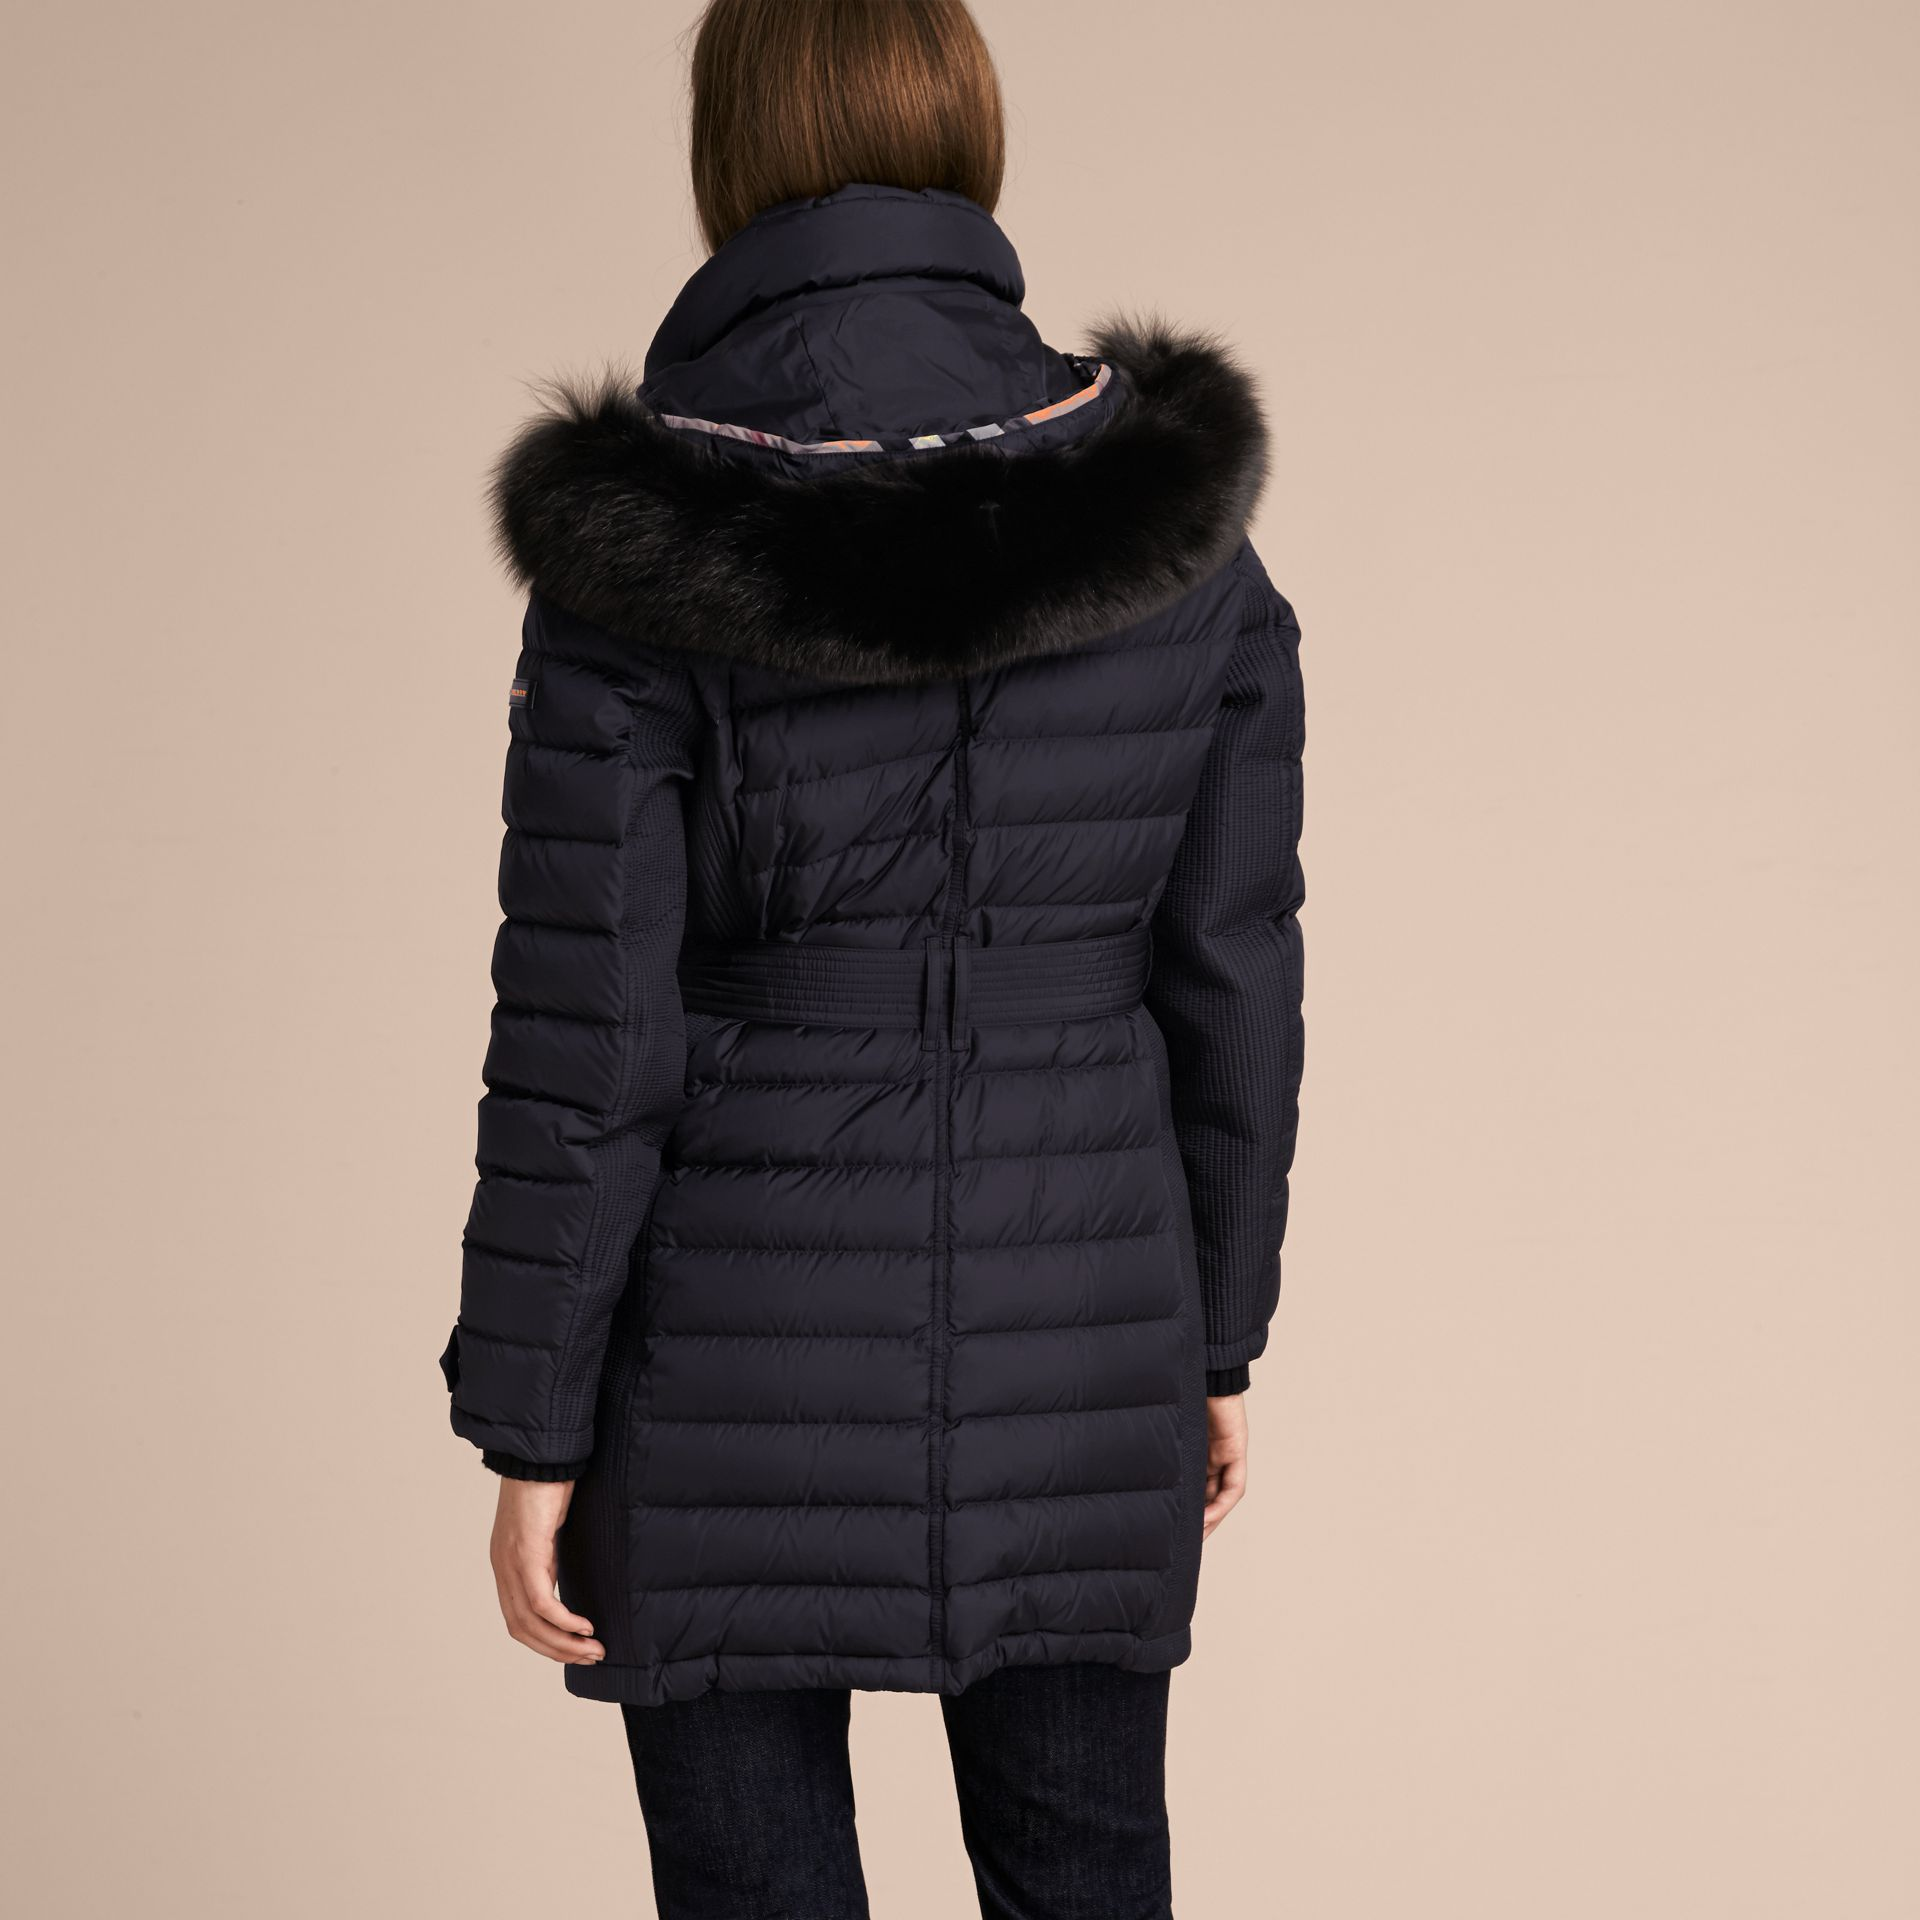 Navy Slim Fit Down-filled Parka with Fur Trim Navy - gallery image 3